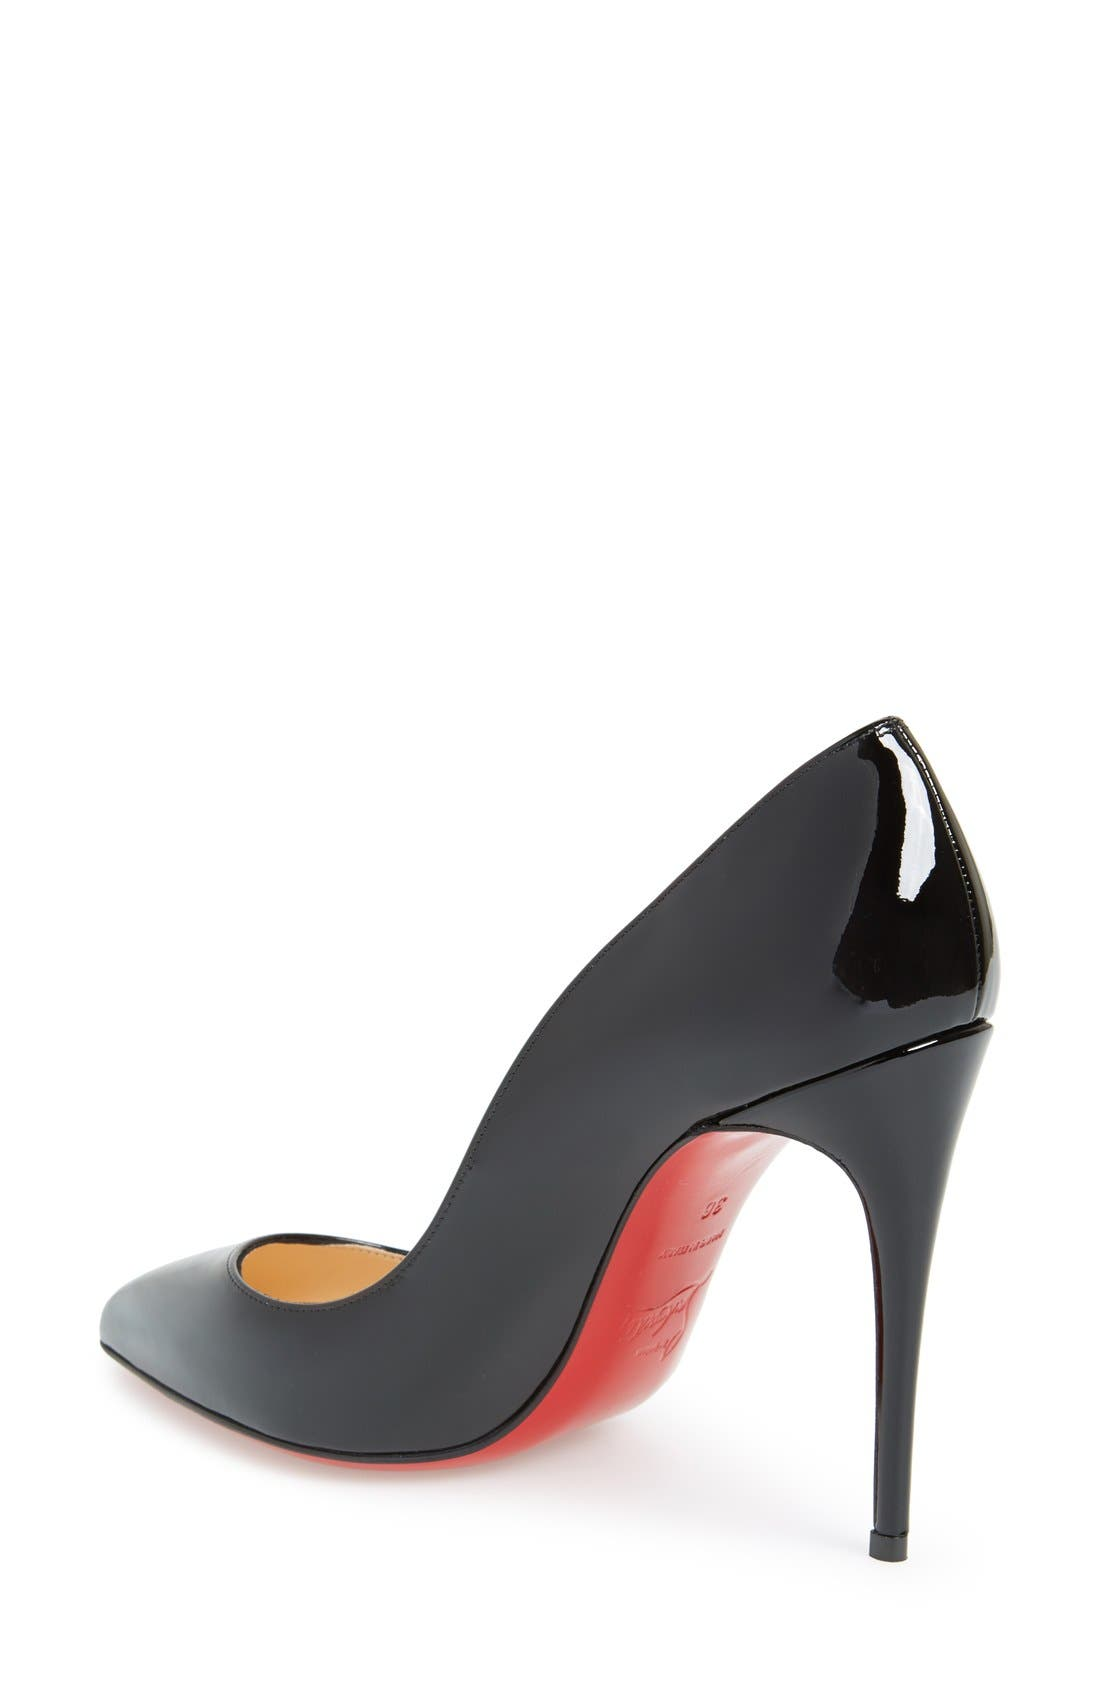 CHRISTIAN LOUBOUTIN,                             Pigalle Follies Pointy Toe Pump,                             Alternate thumbnail 2, color,                             001